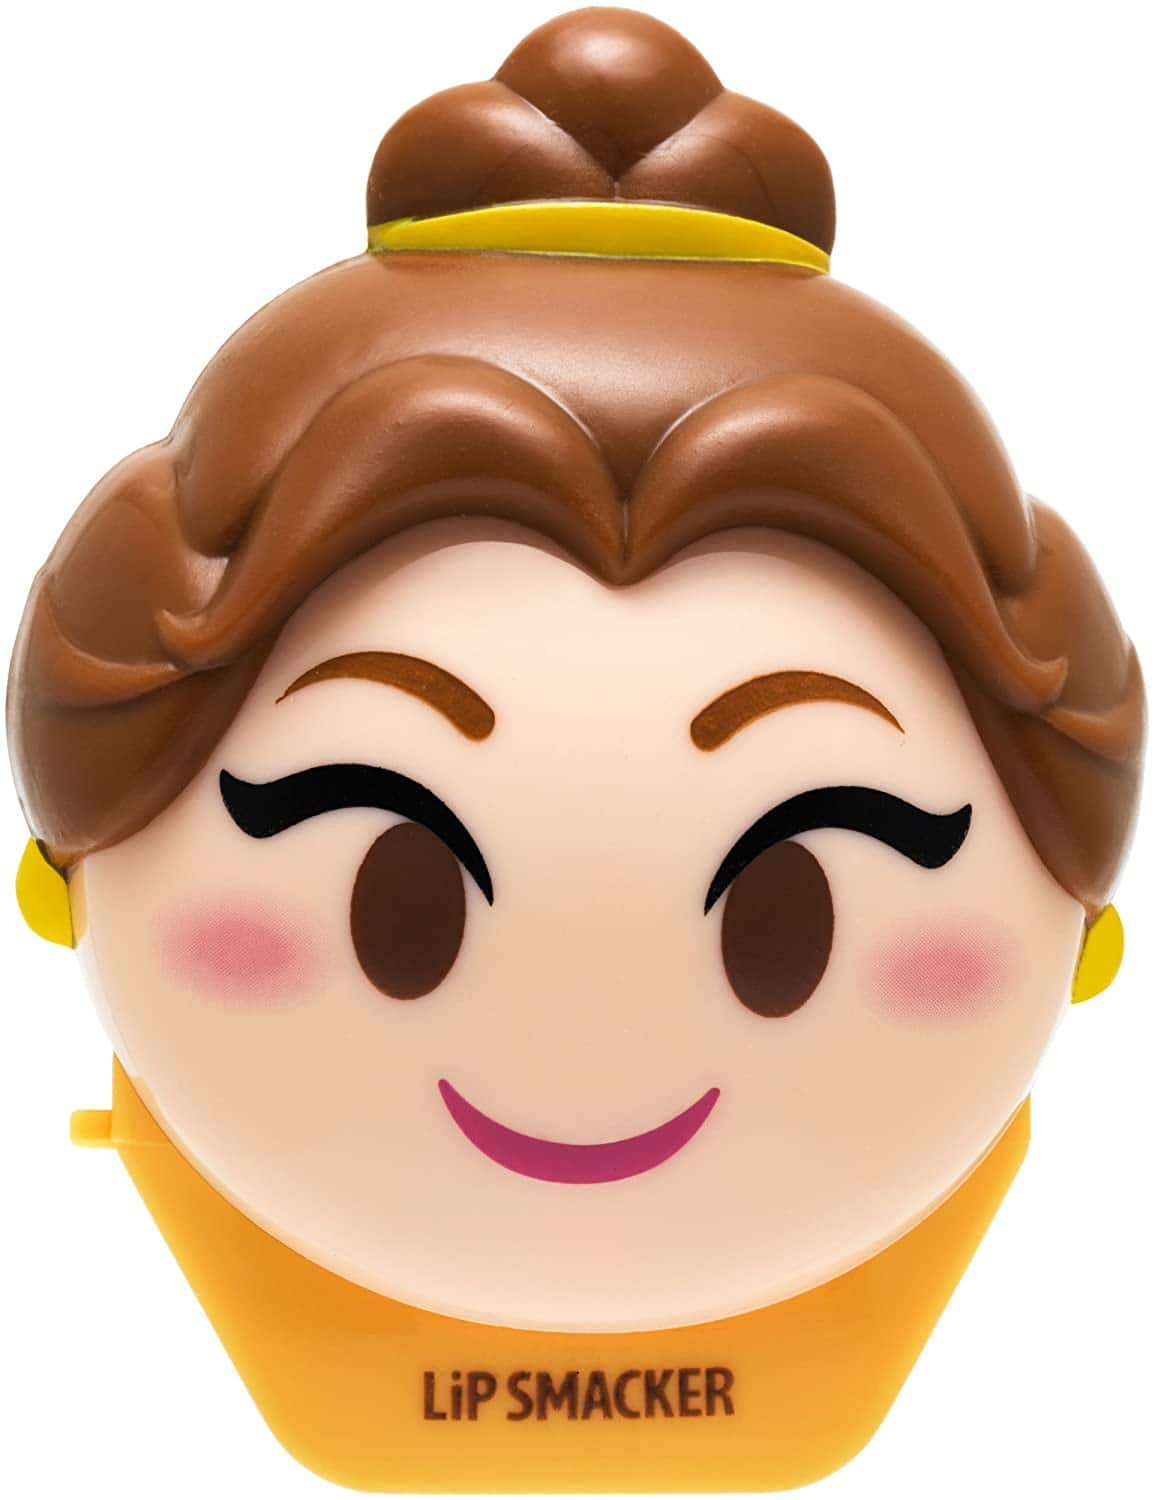 Lip Smacker Disney Emoji Lip Balm (Belle Last Rose Petal) $2.39 w/ S&S + Free Shipping w/ Prime or $25+